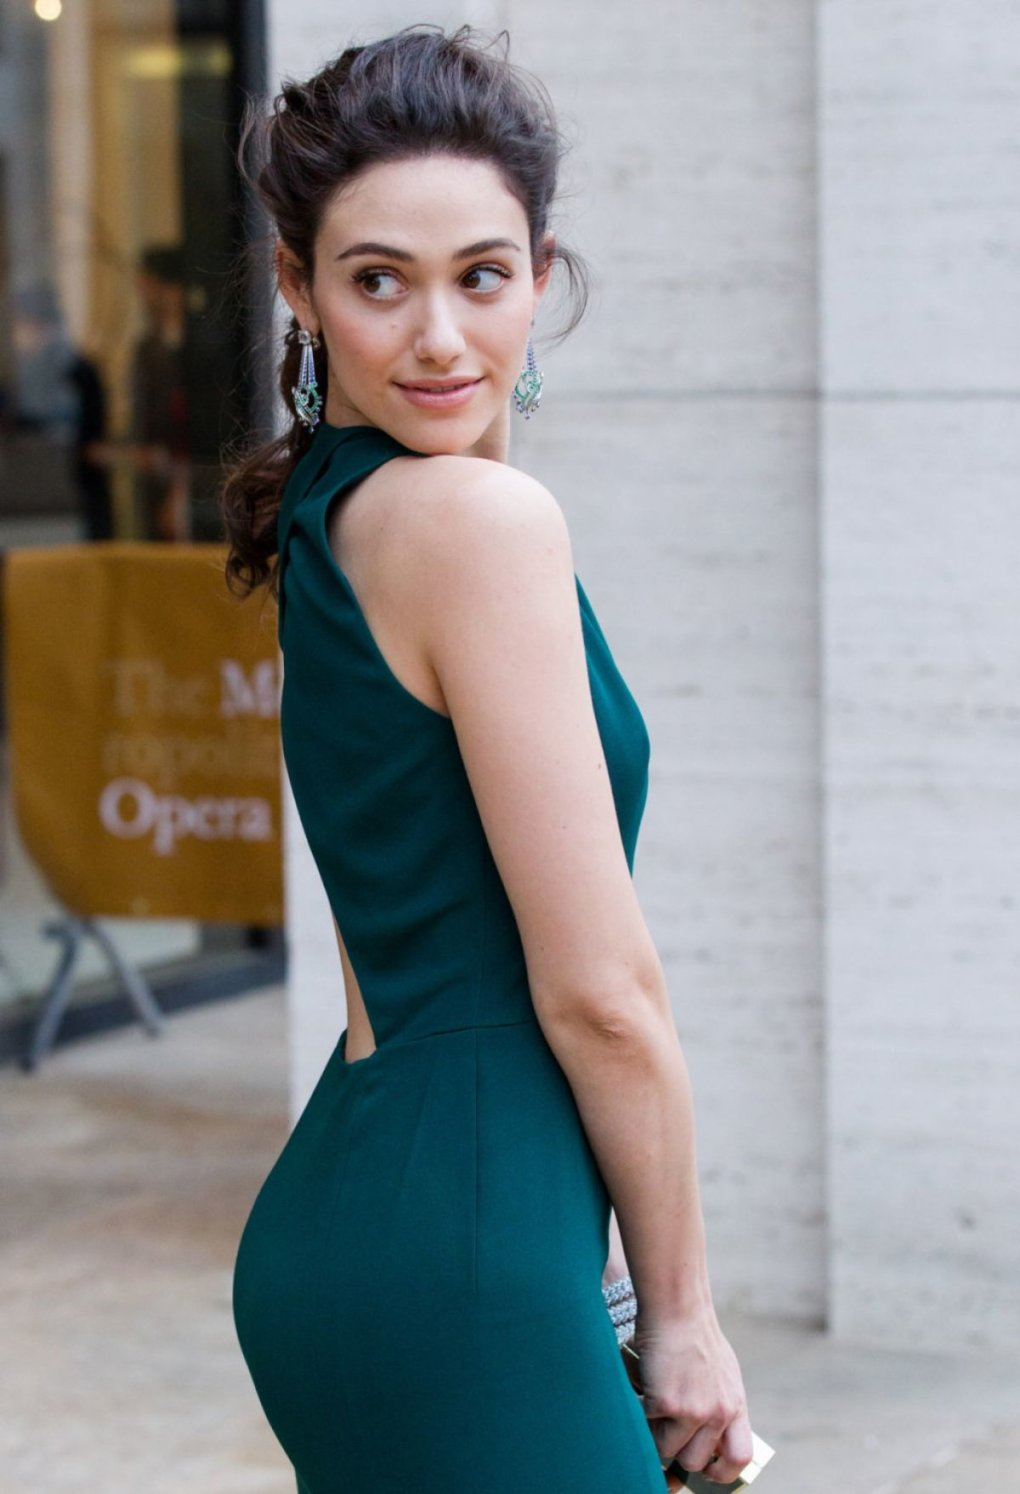 61 Hot Pictures Of Emmy Rossum Which Are Sure to Catch Your ...